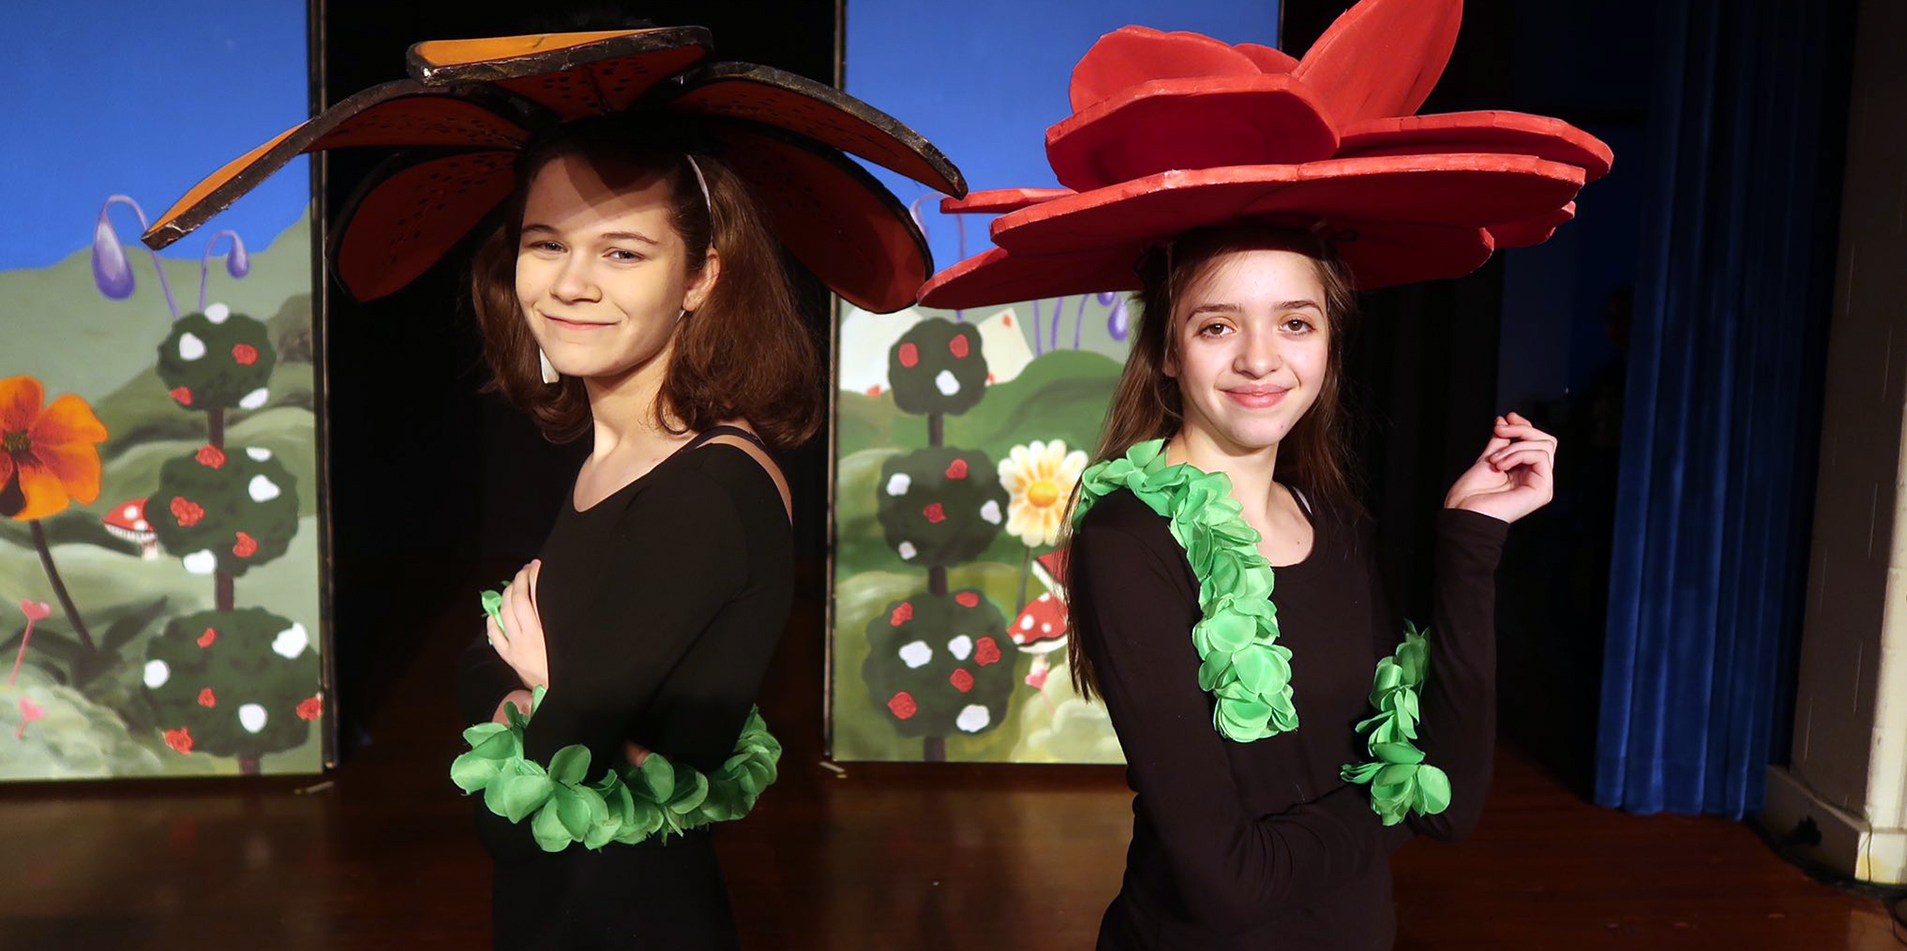 Two female students dressing in costume and silly hats for school play.